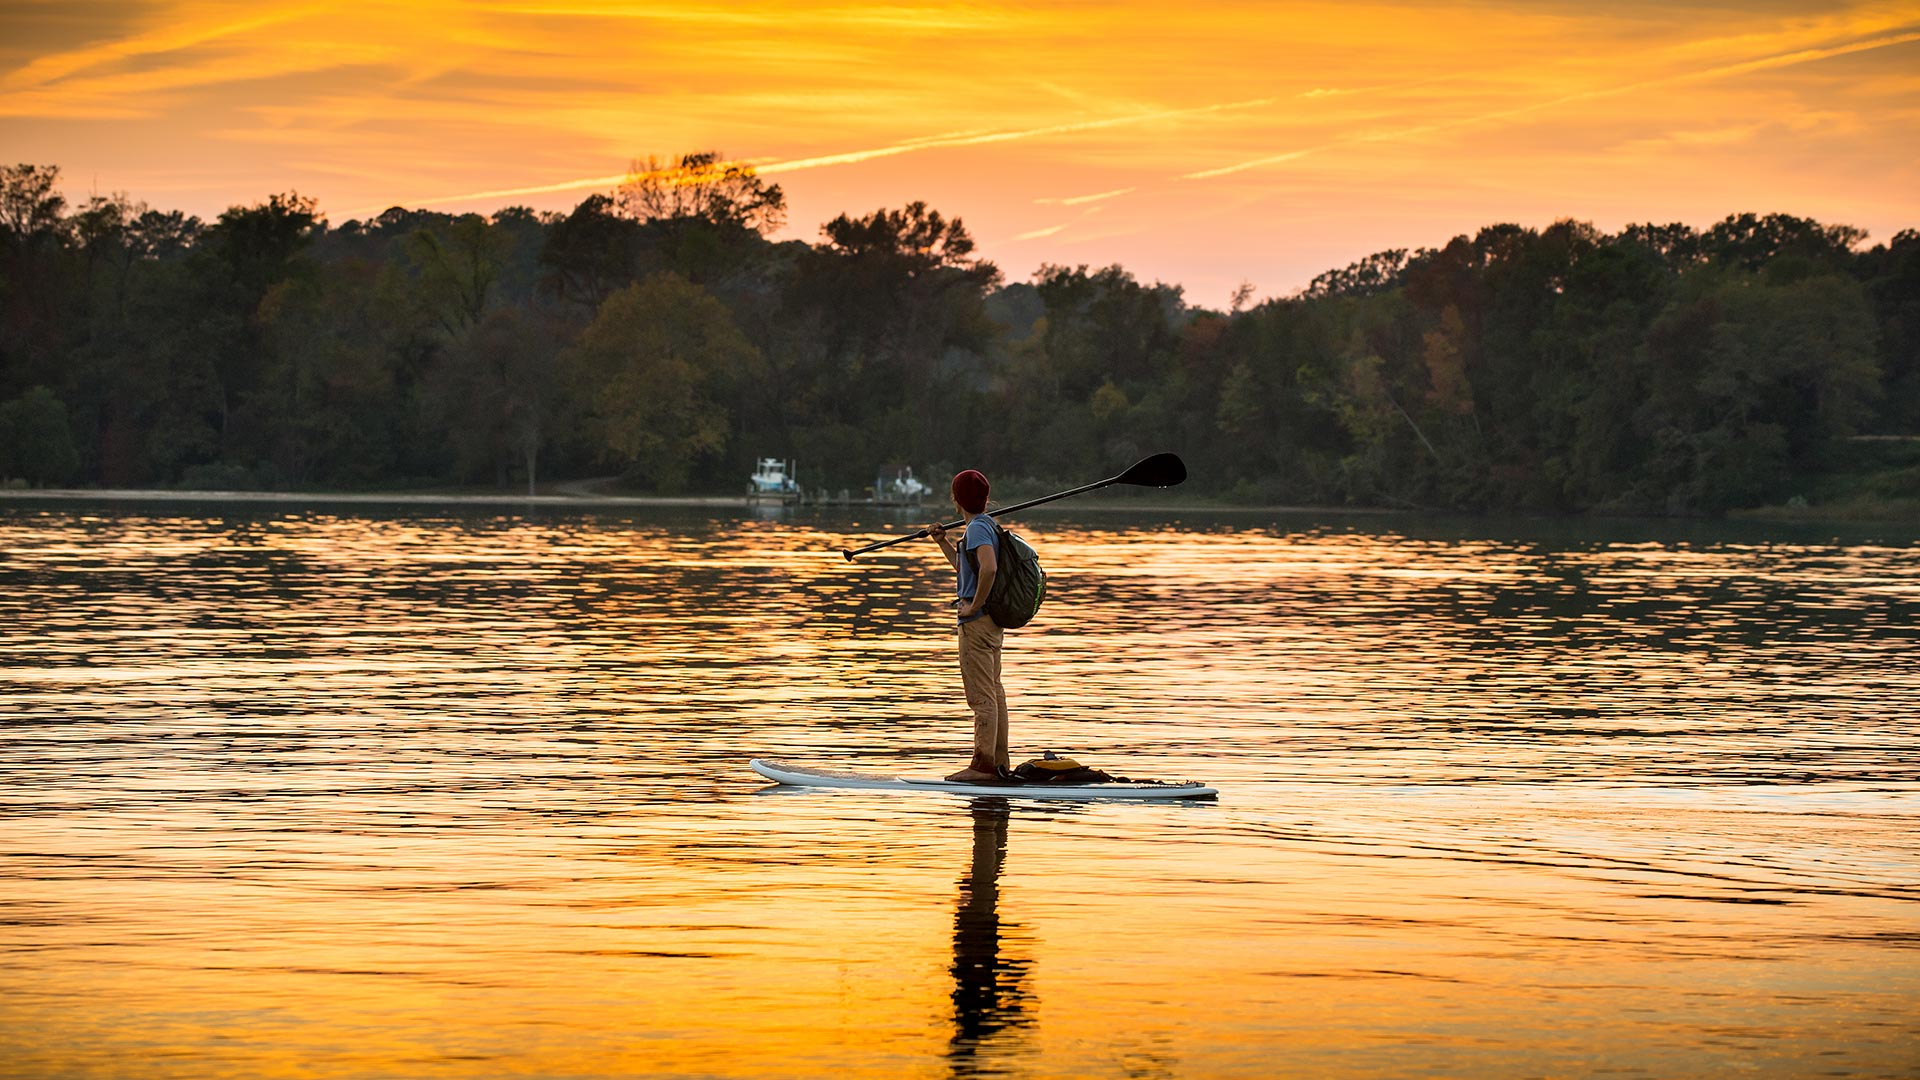 Male student with backpack on stands on a paddleboard admiring a beautiful yellow and orange sunset.